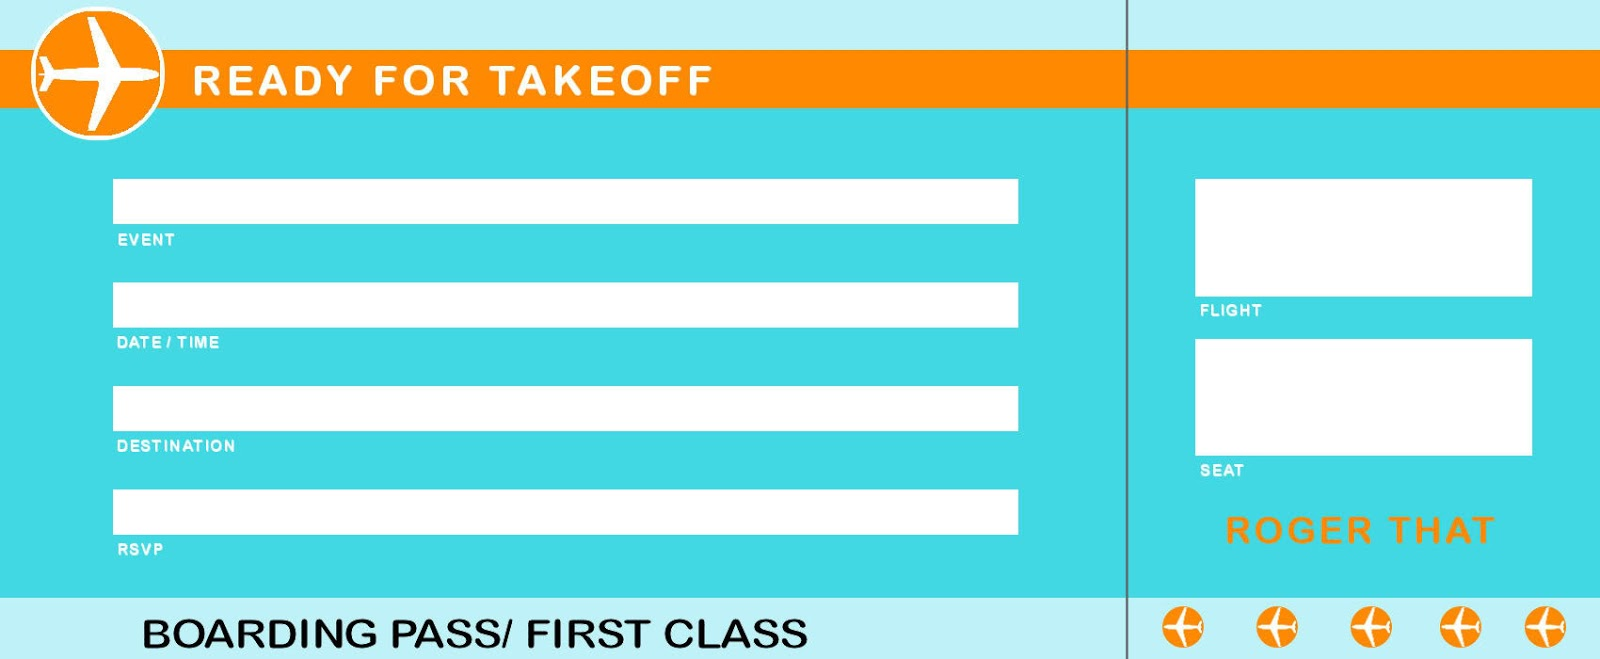 Plane Ticket Template  Airplane Ticket Template